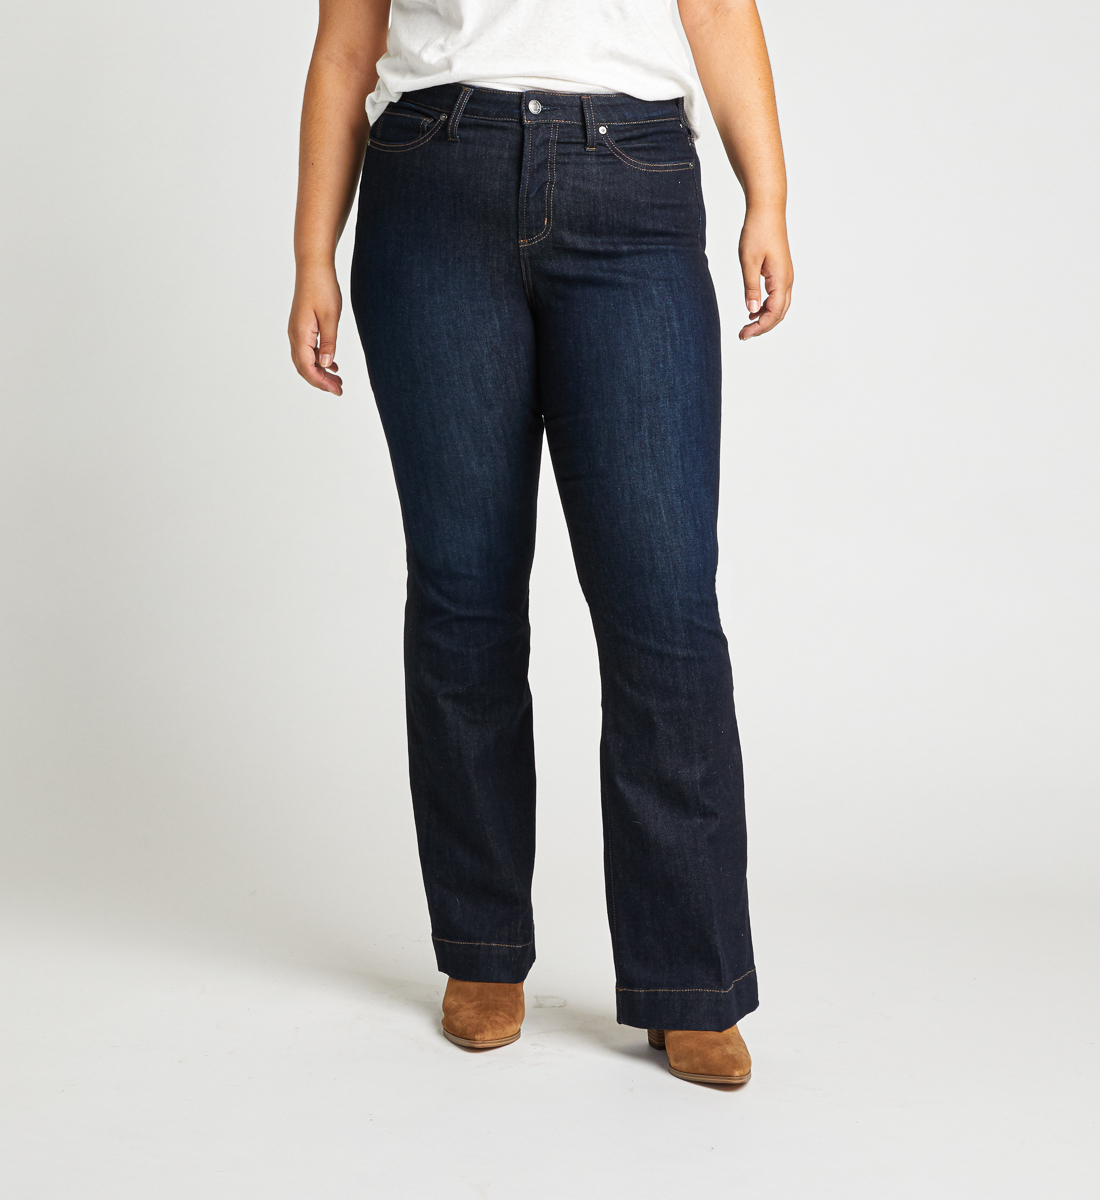 High Note High Rise Trouser Plus Size Jeans Front